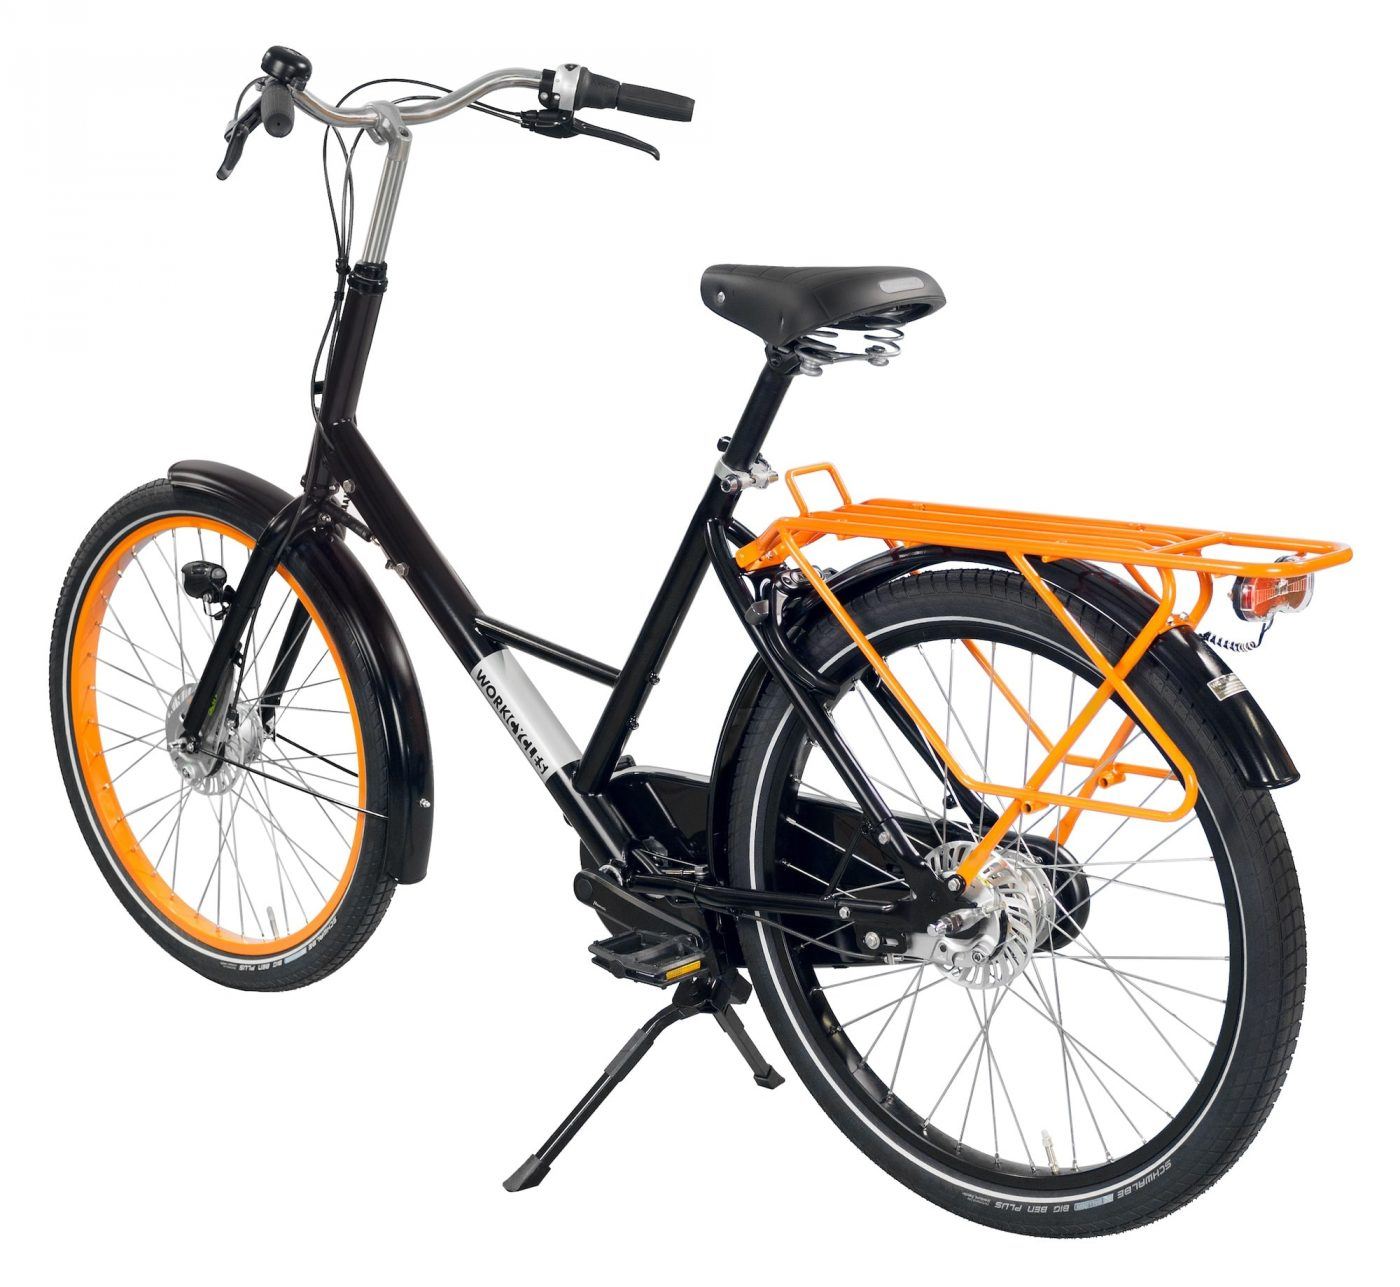 Everything about the Workcycles Fr8 Classic, including the geometry, generous clearances, fittings and materials has been developed to create the toughest, most stable and convenient bicycle possible.